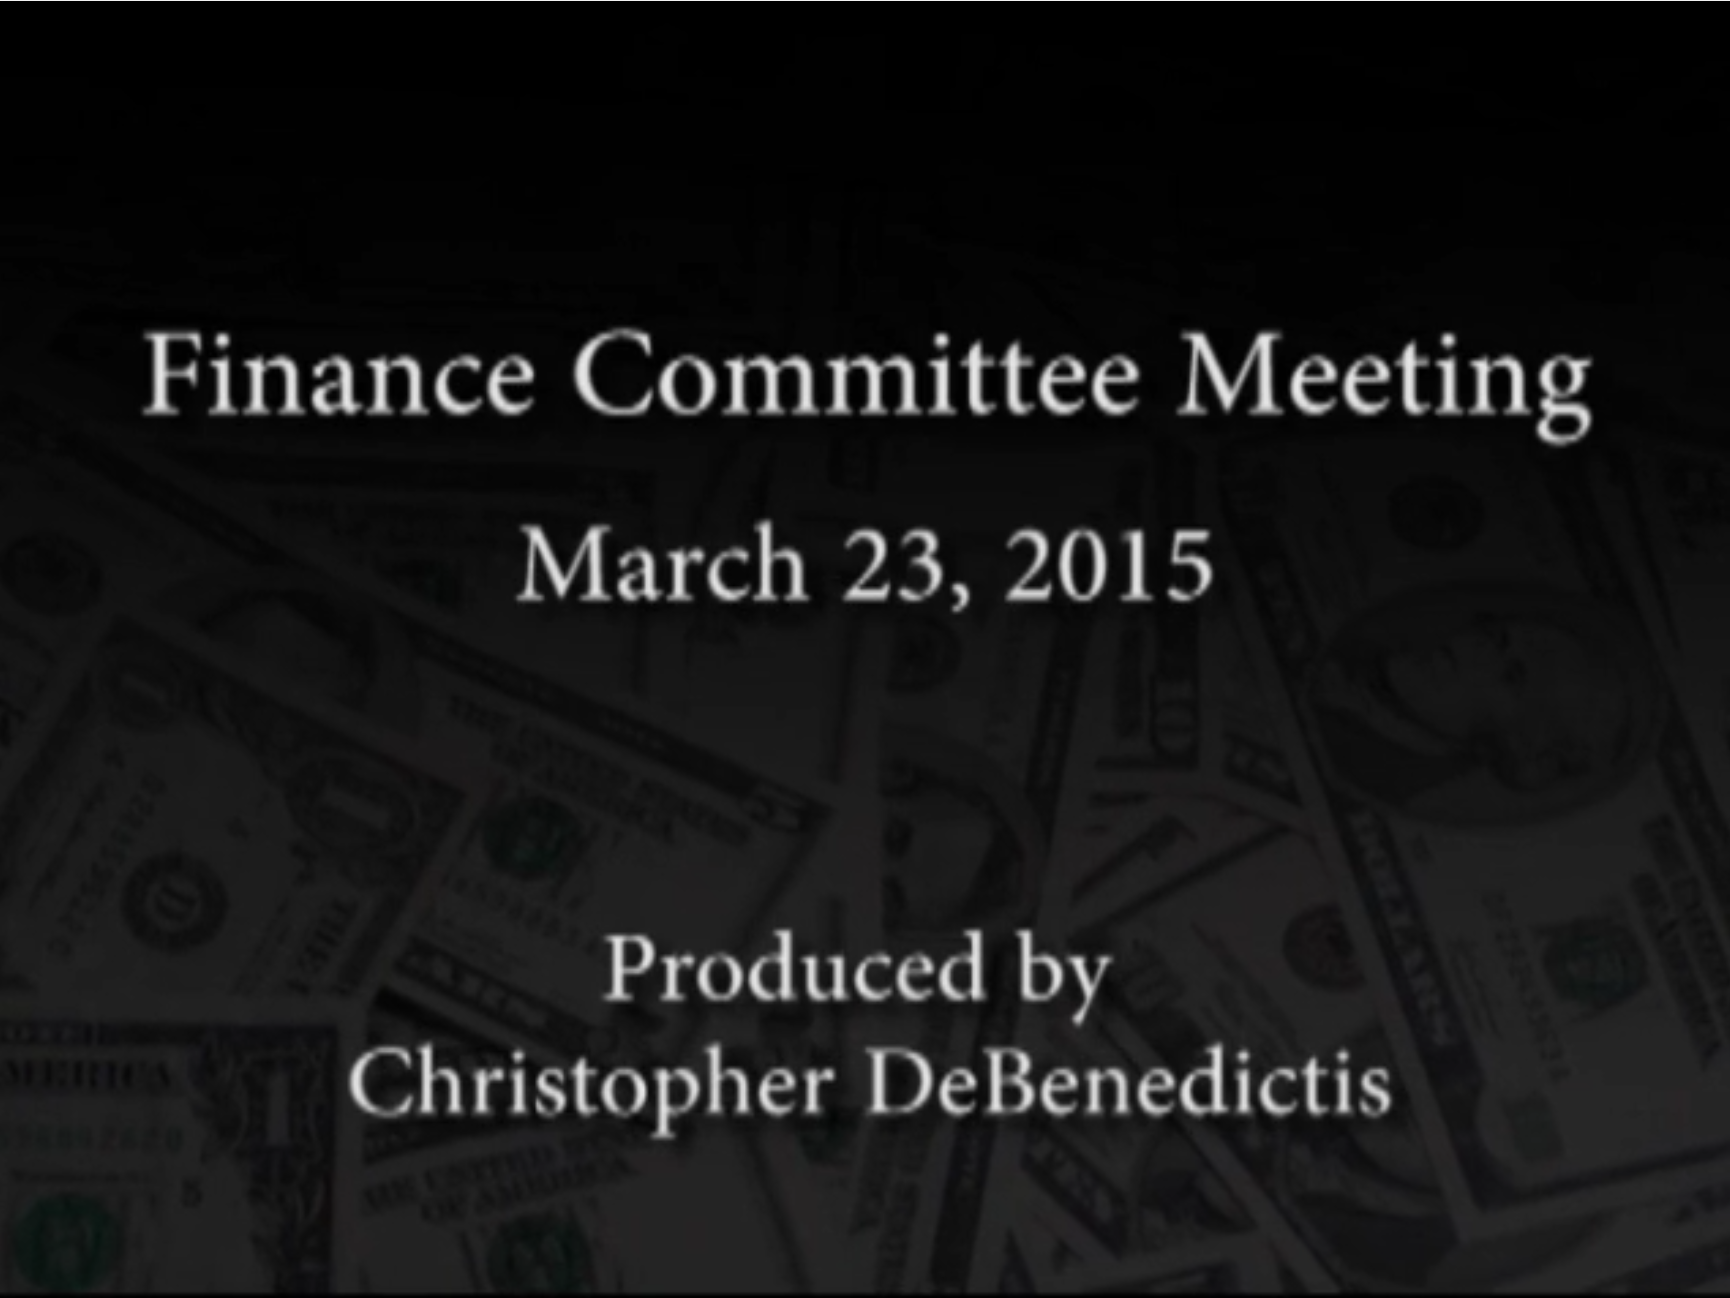 Finance Committee Meeting – March 23, 2015